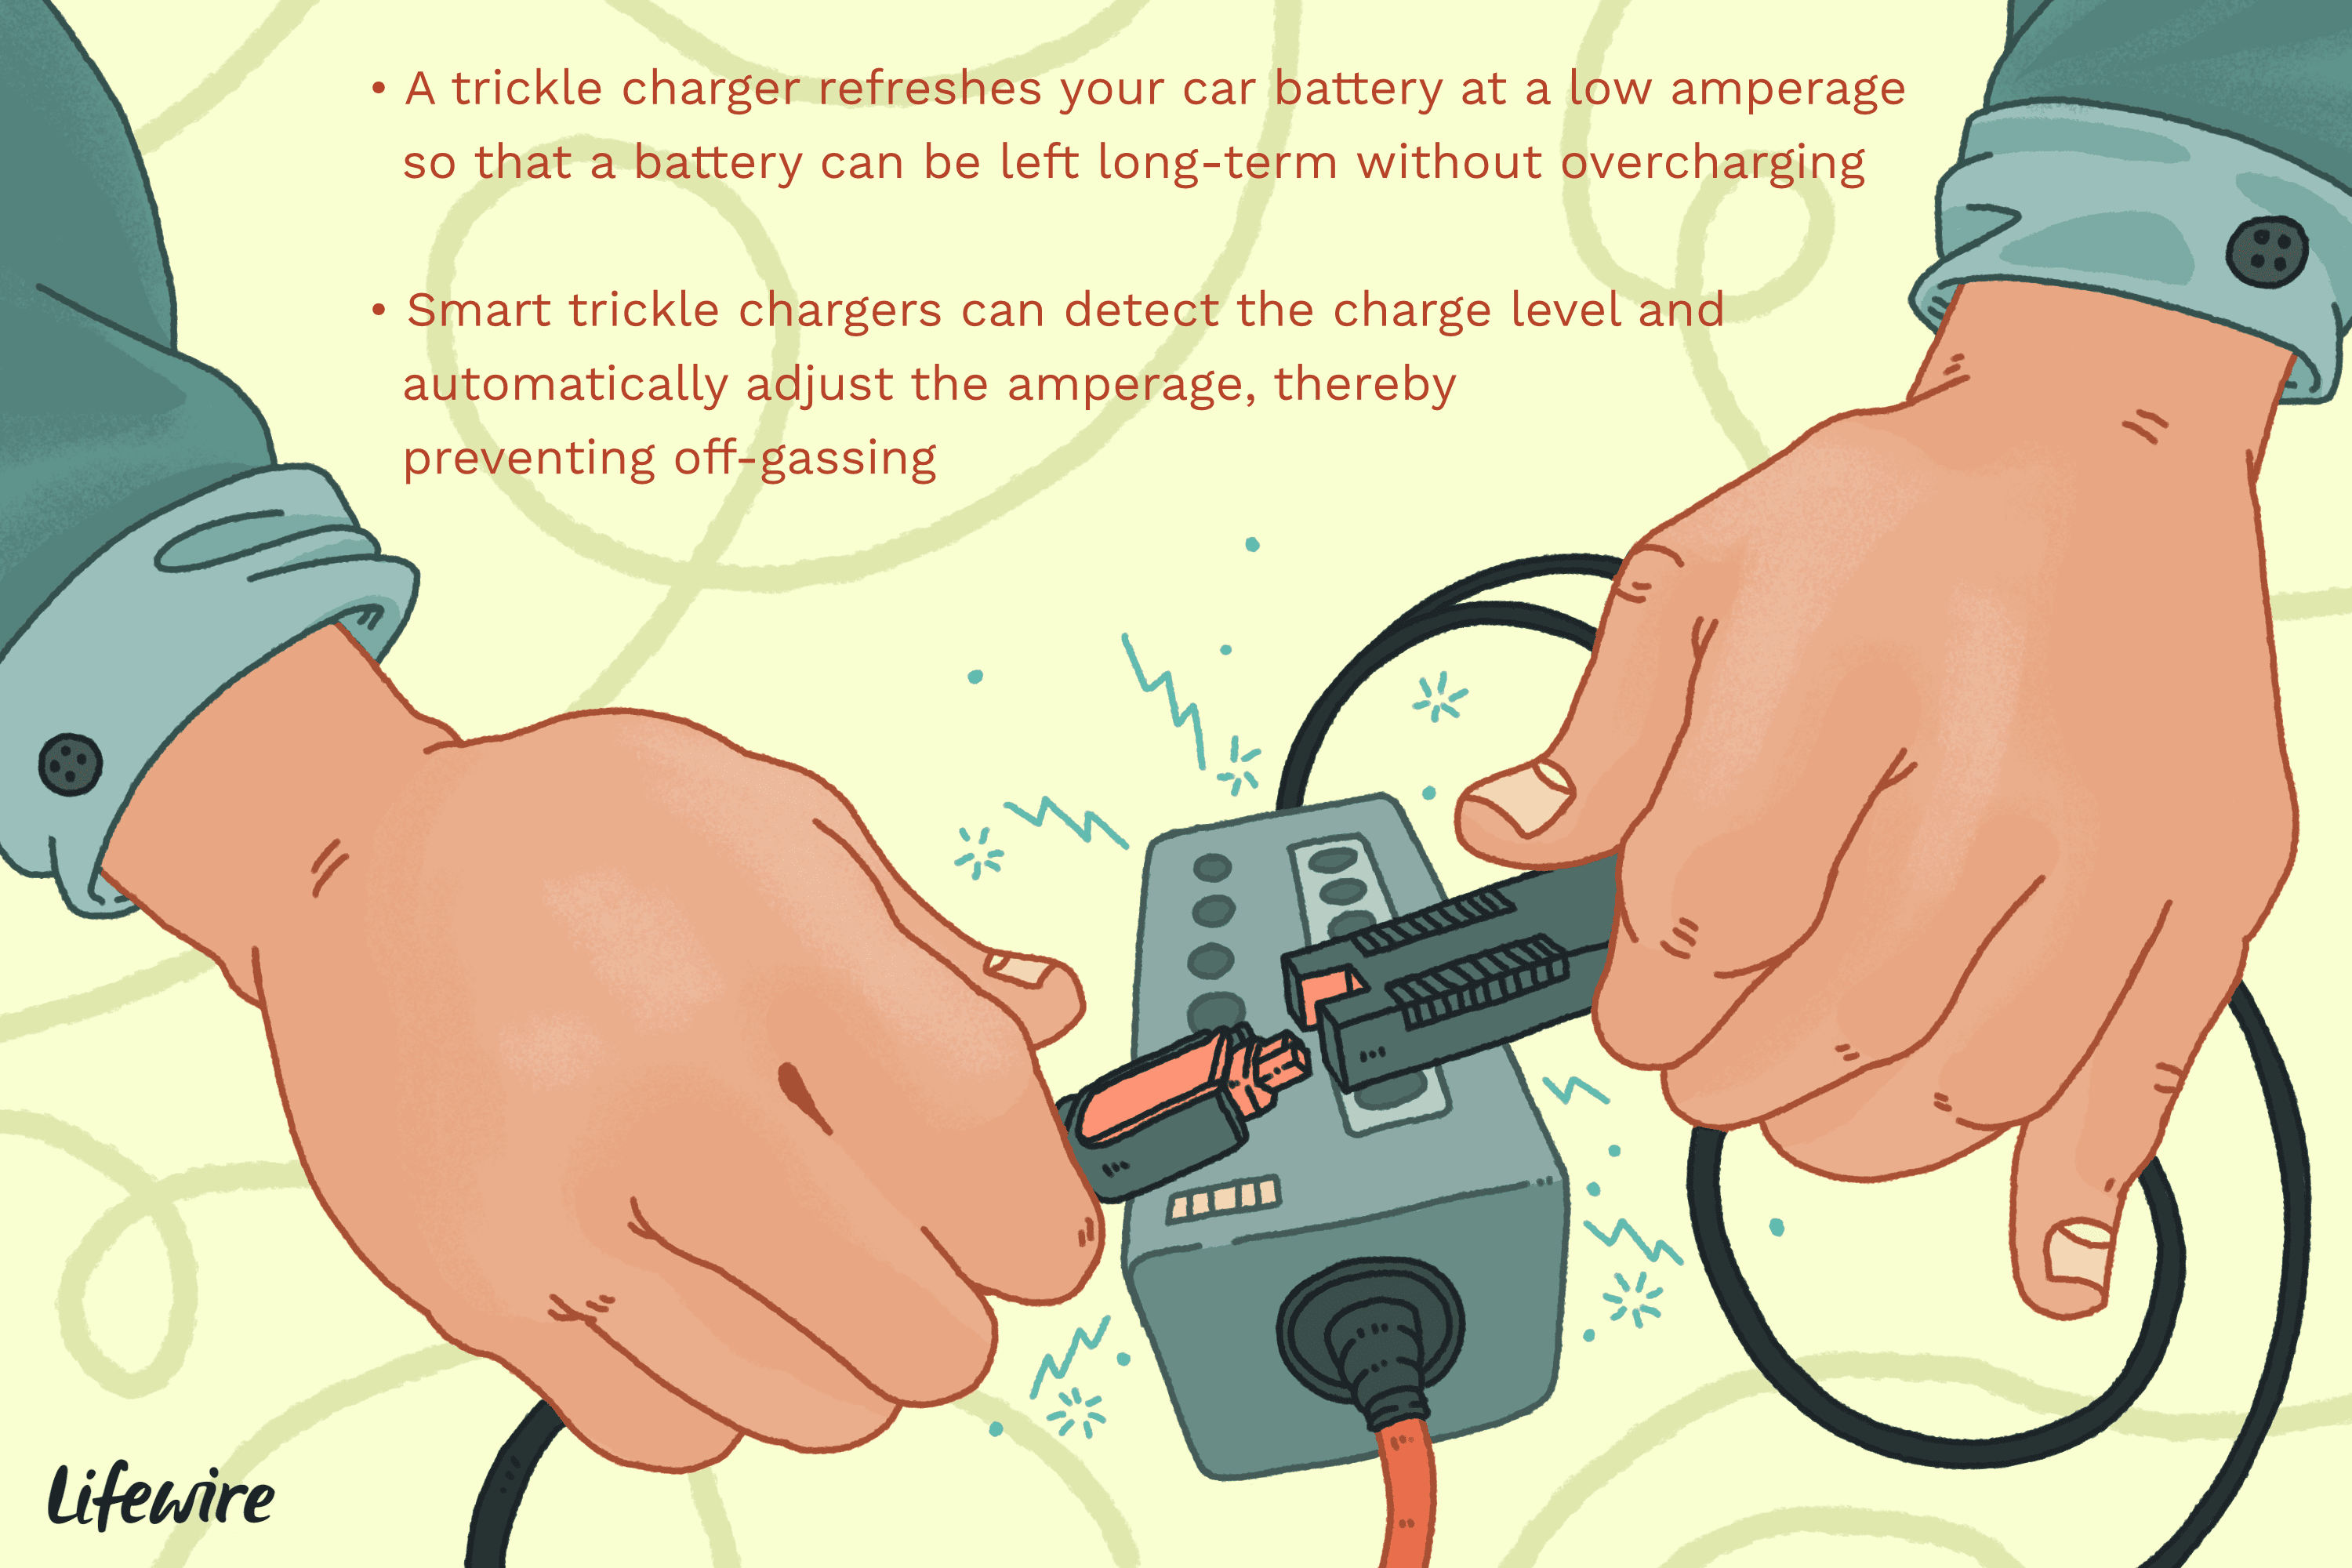 How To Charge A Car Battery Without A Charger >> Using A Trickle Charger For Your Car Battery